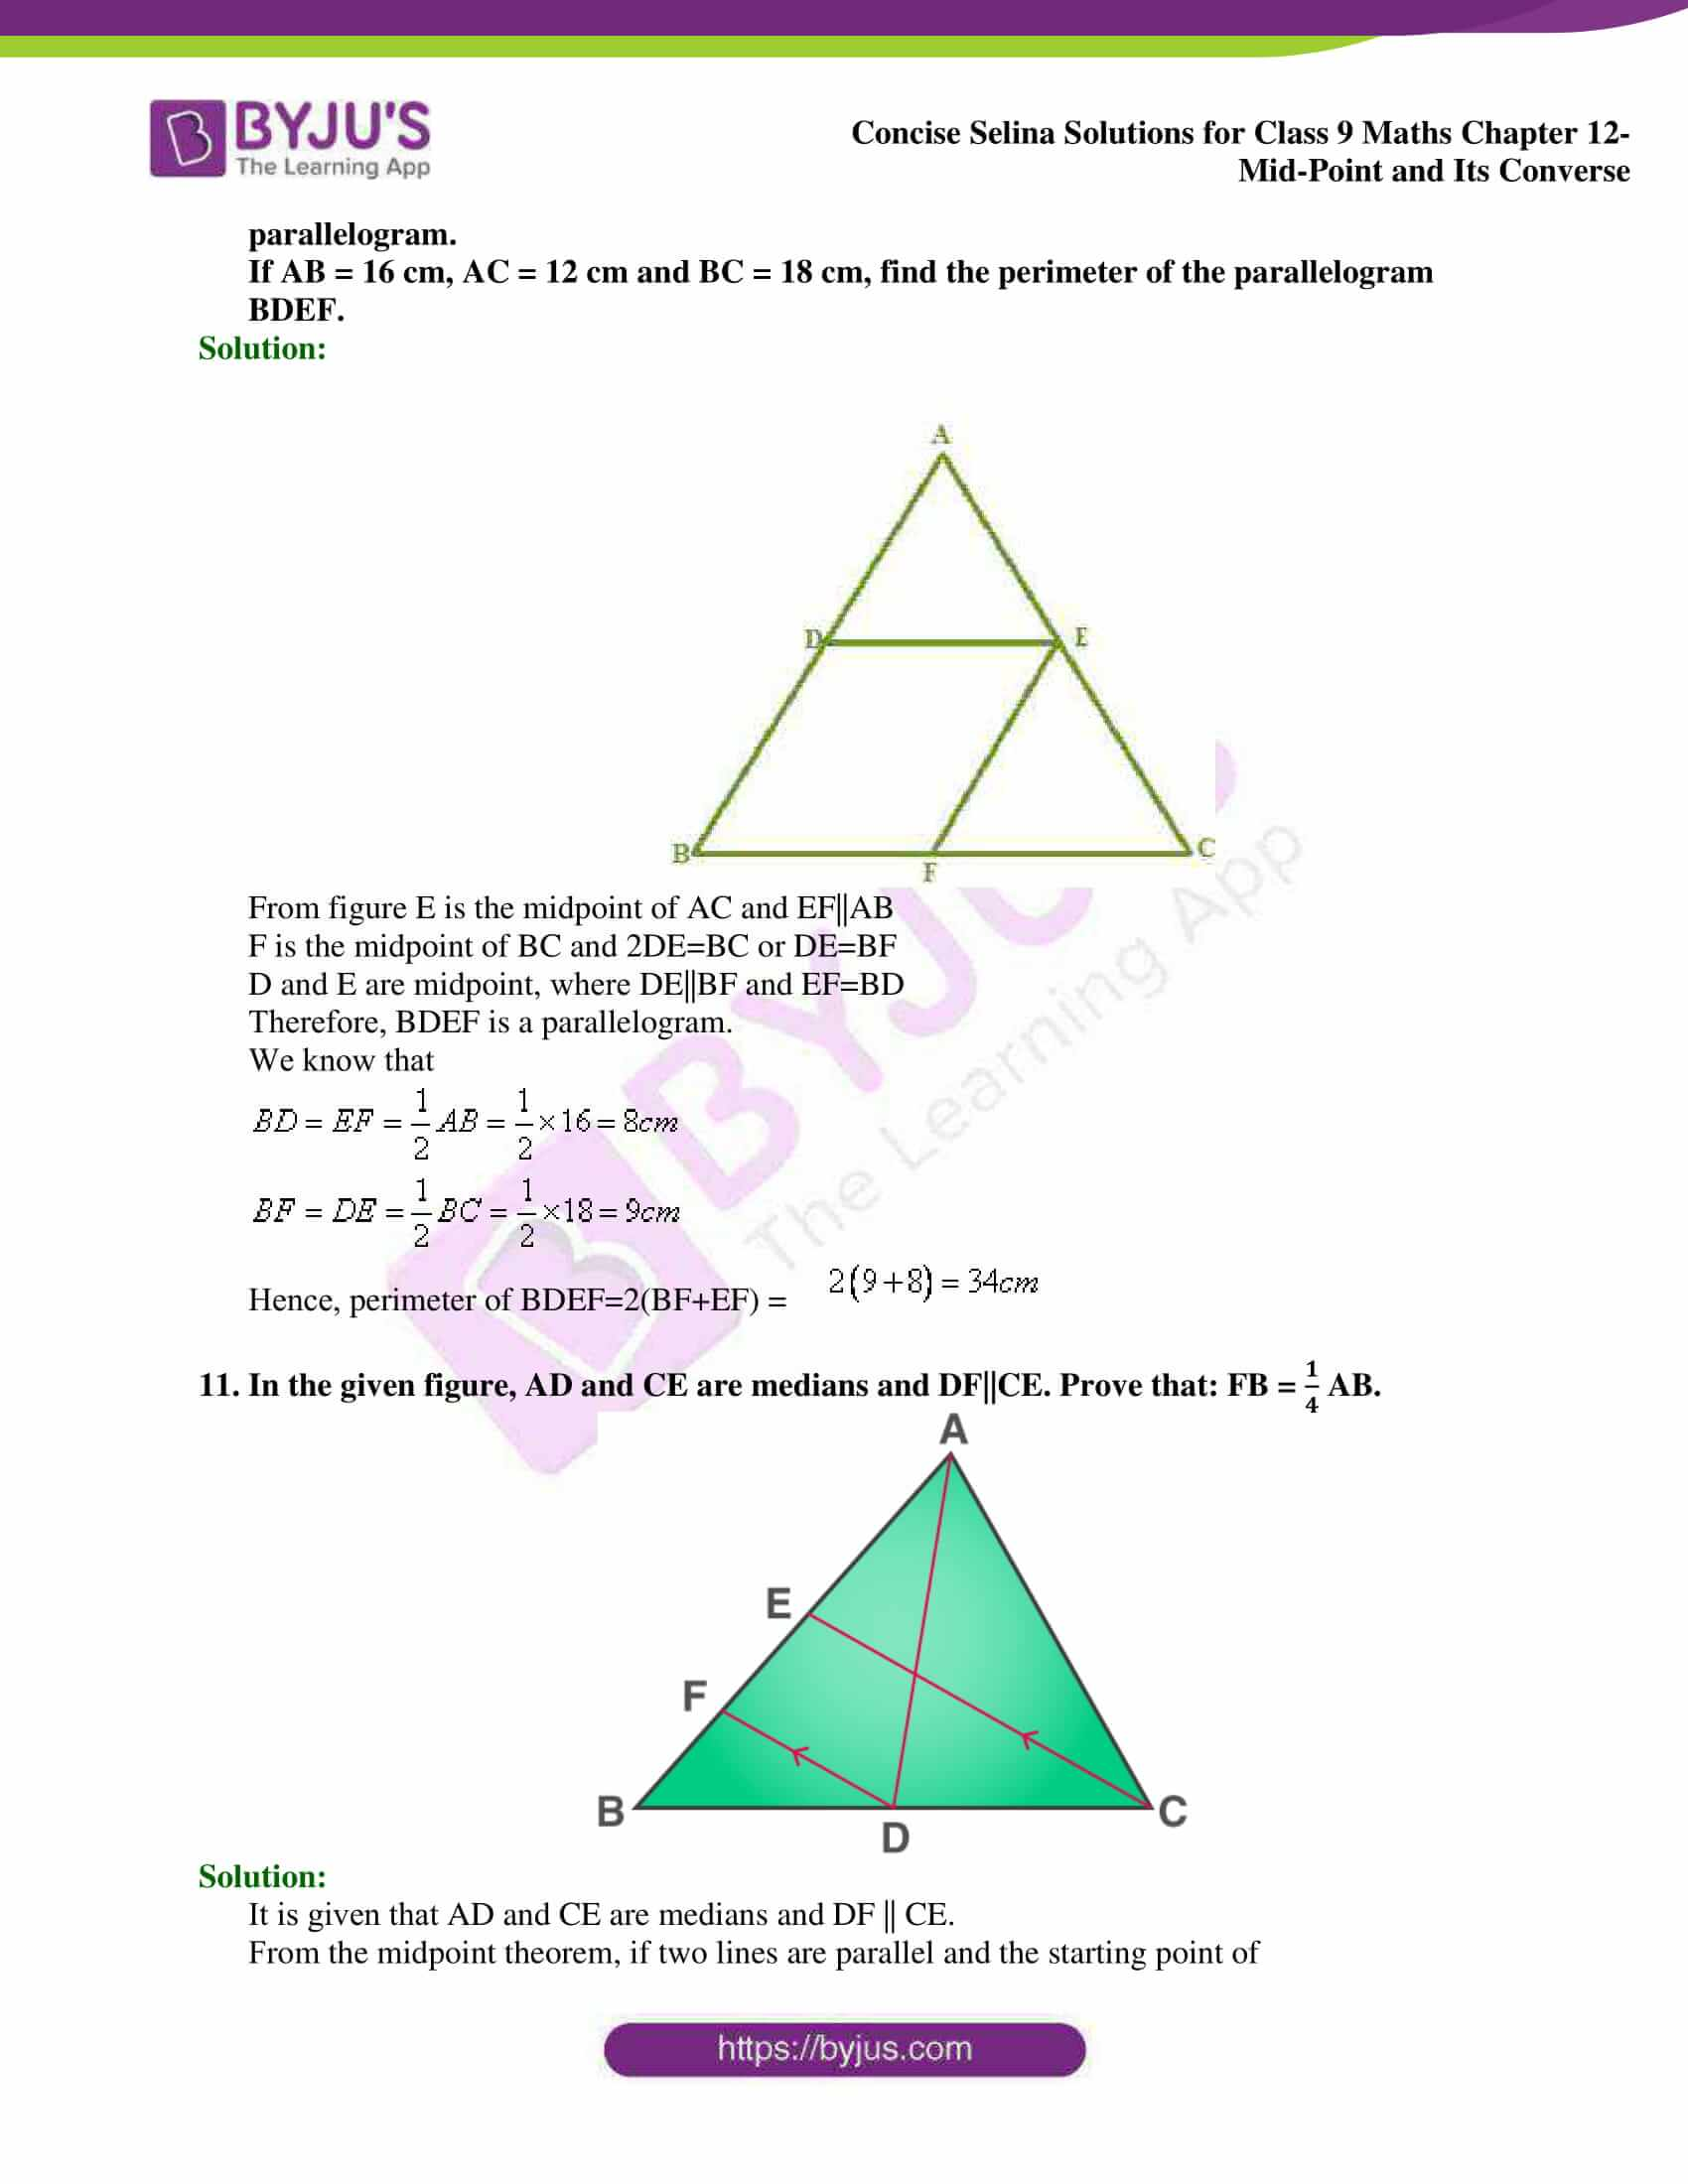 selina Solutions for Class 9 Maths Chapter 12 19